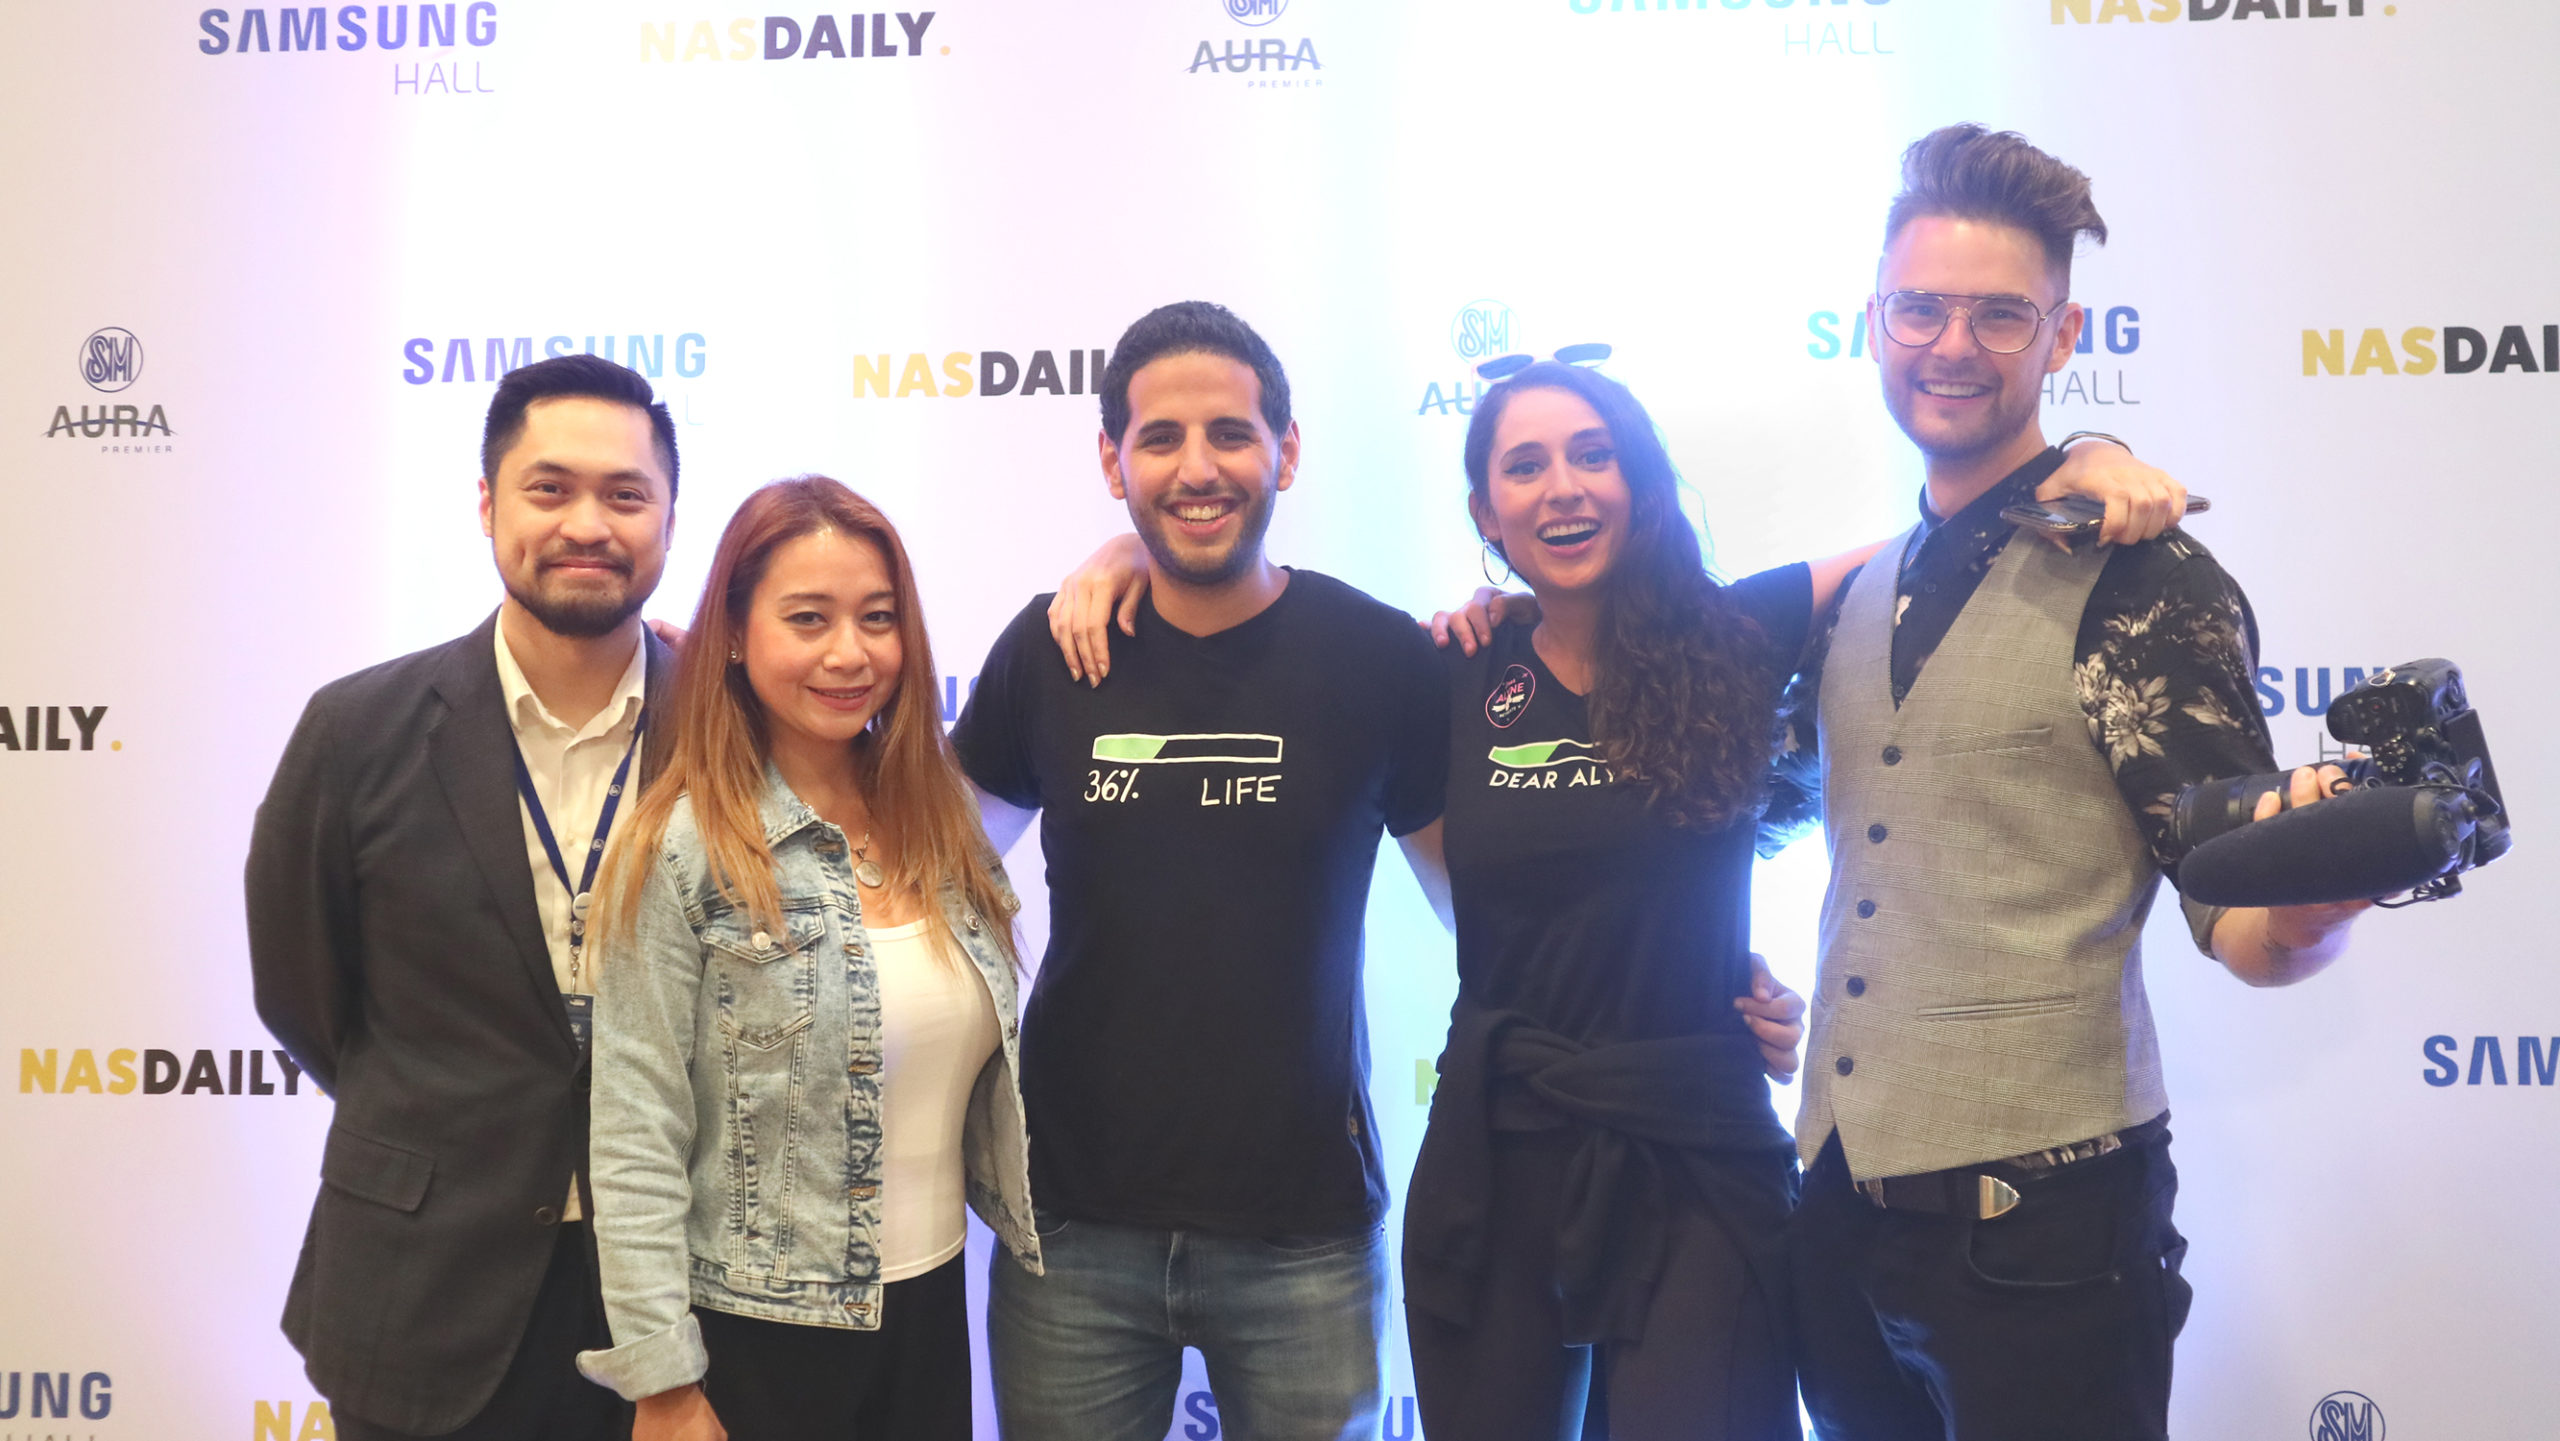 Nas Daily Talks About Philippine Environment  at Samsung Hall, SM Aura Premier